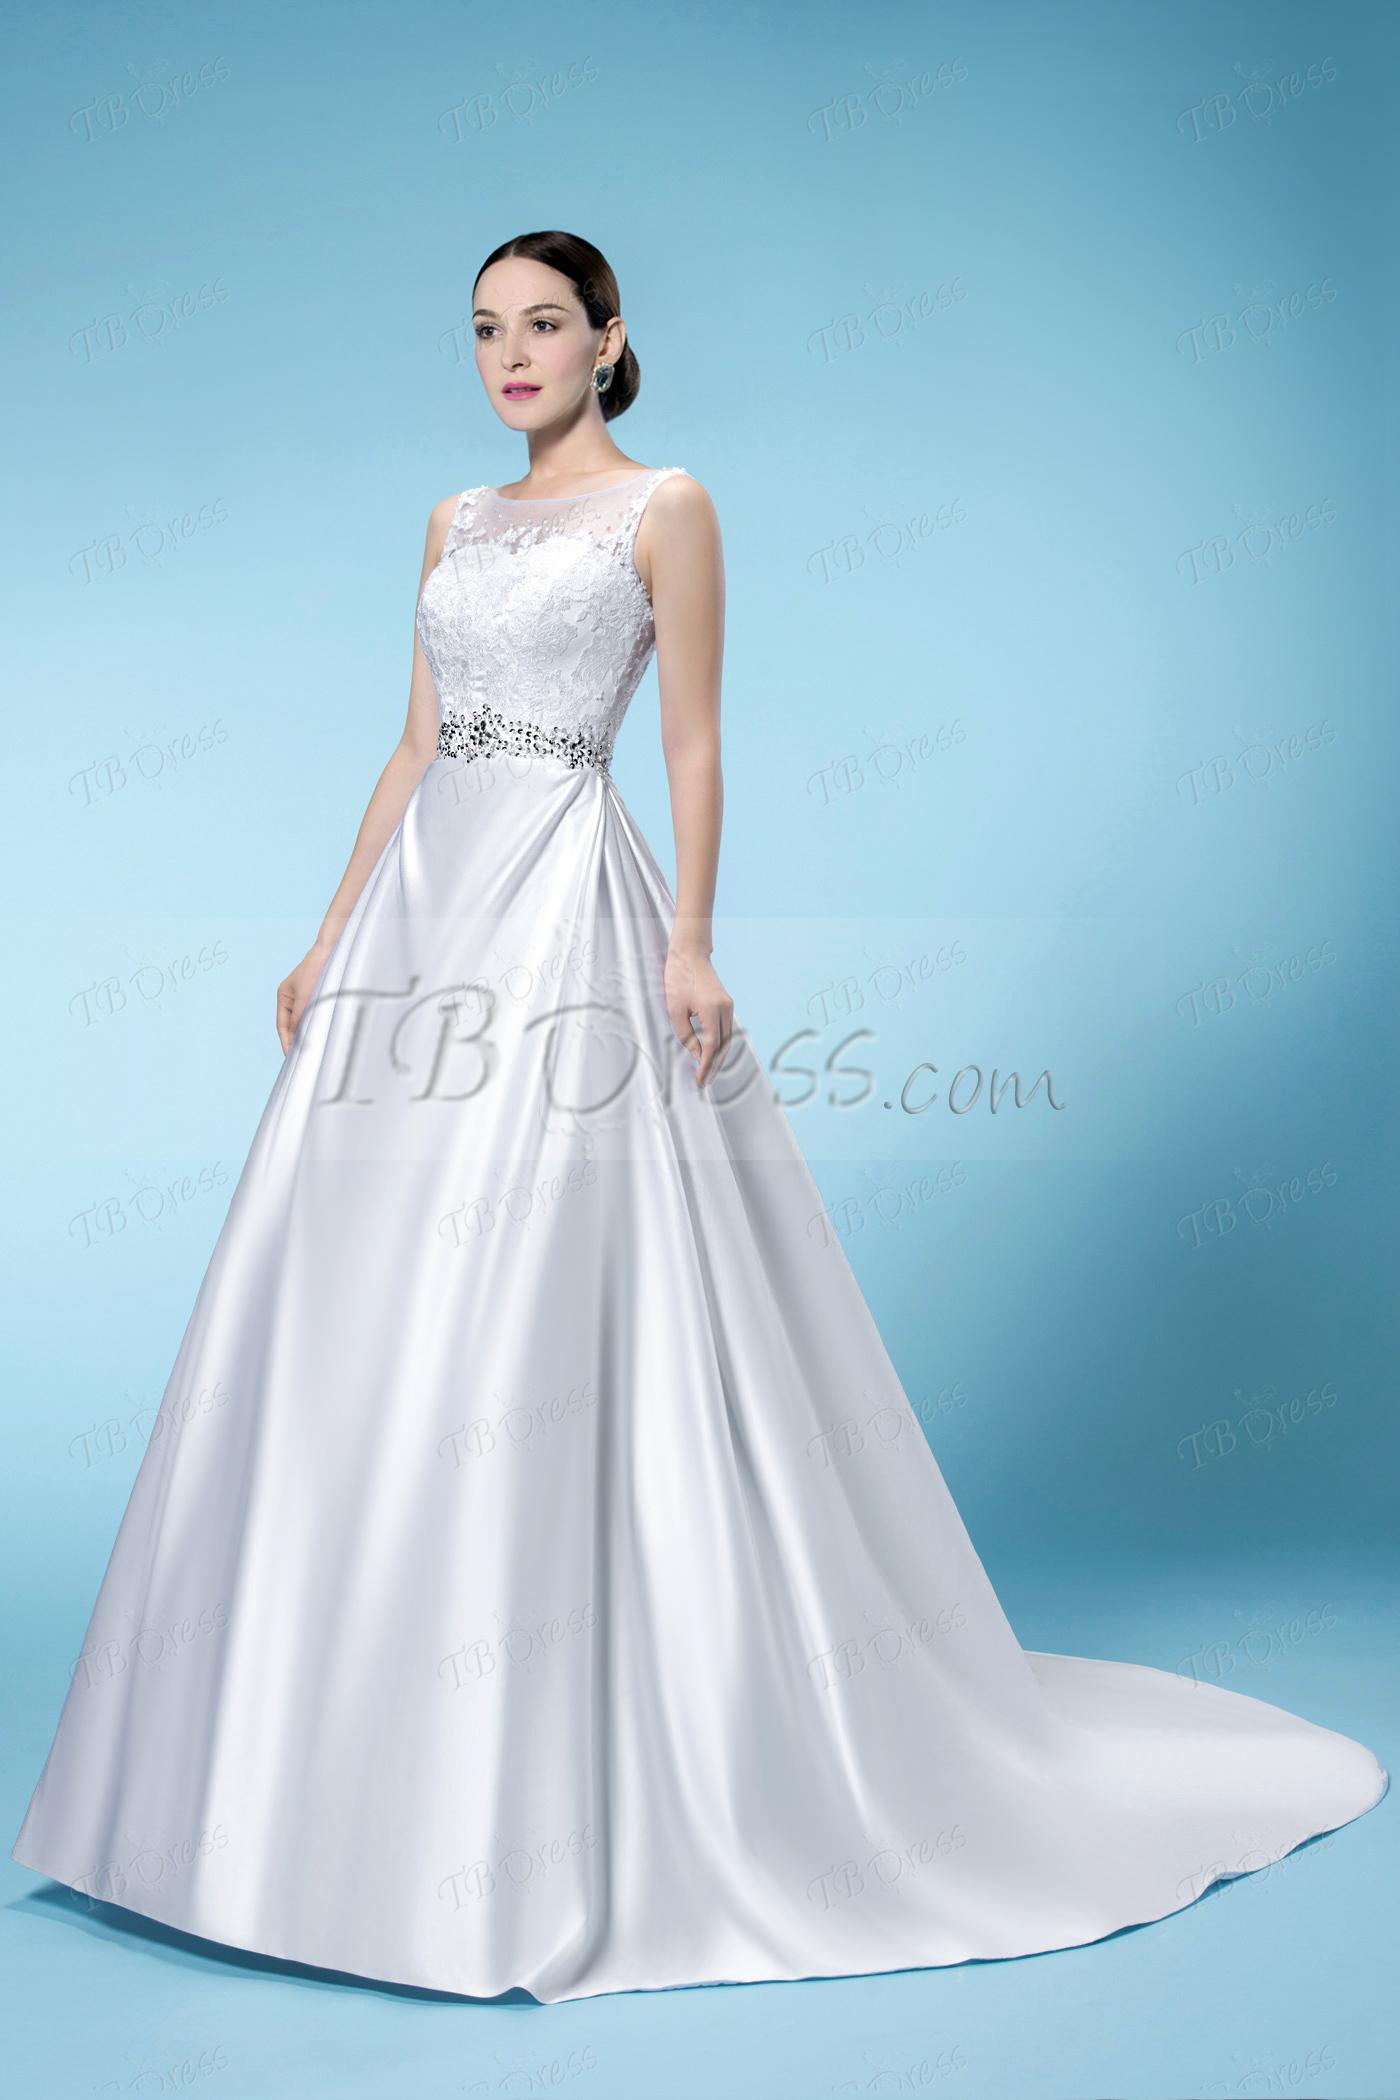 Black friday sale from a leading dress company for Black friday wedding dresses